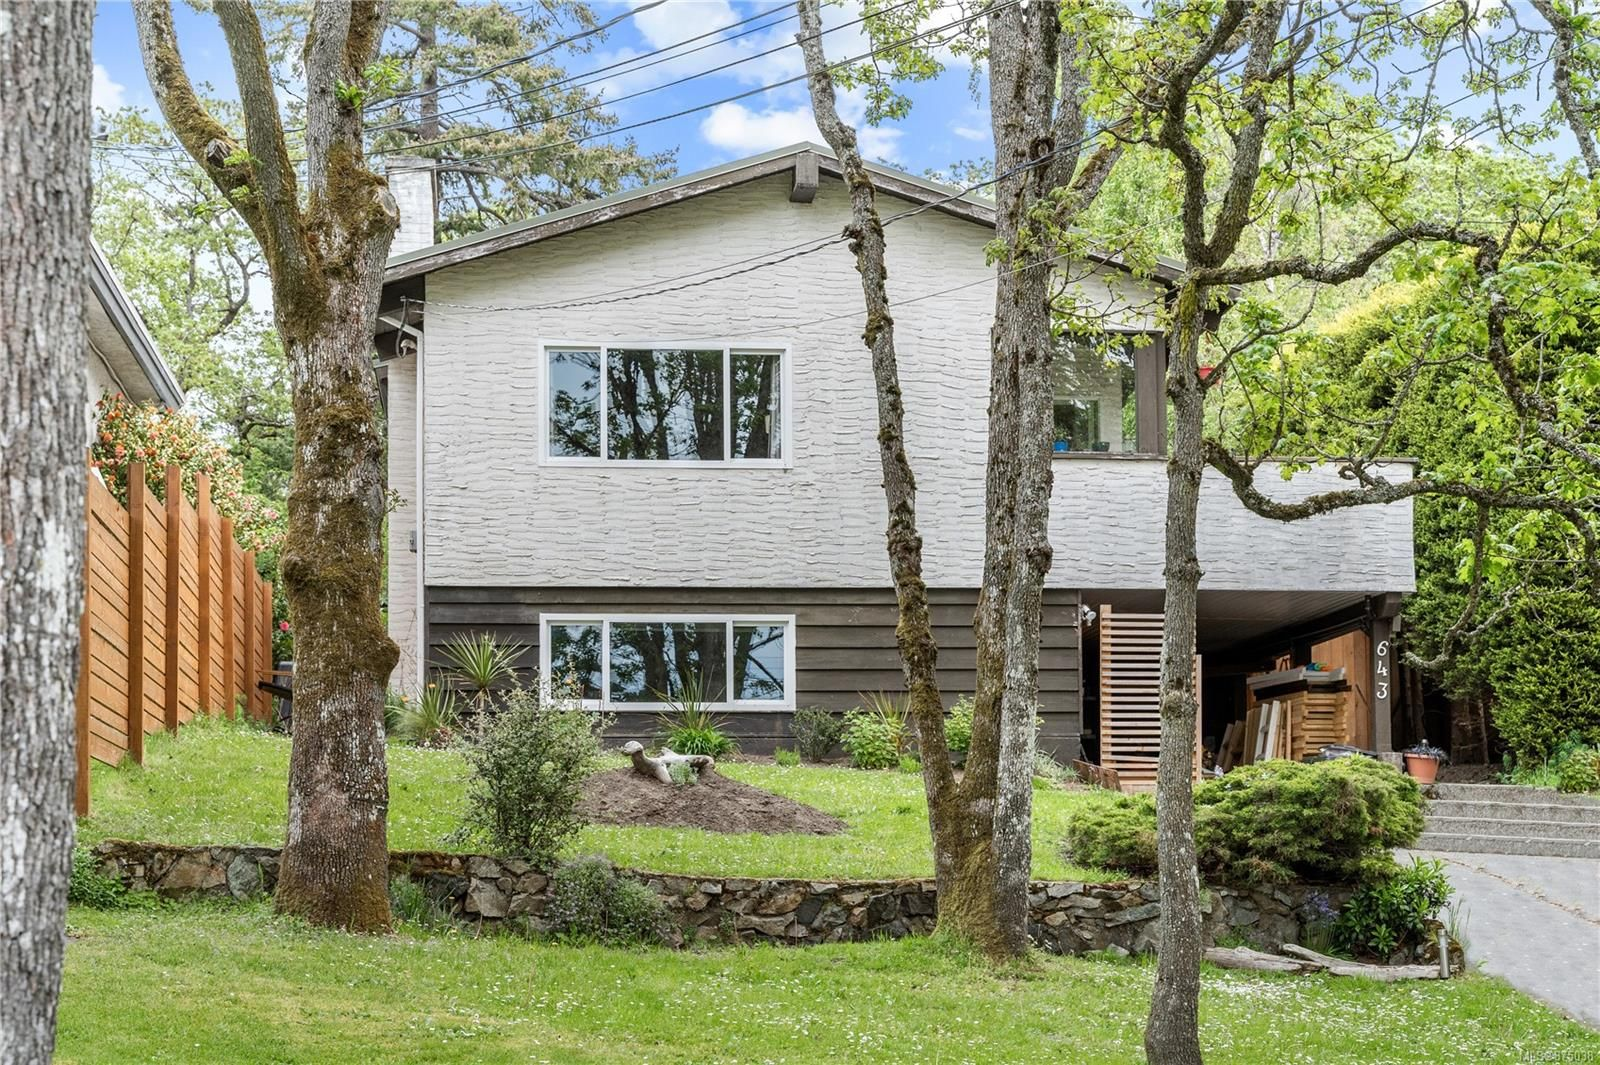 Main Photo: 643 Drake Ave in : Es Rockheights House for sale (Esquimalt)  : MLS®# 875038